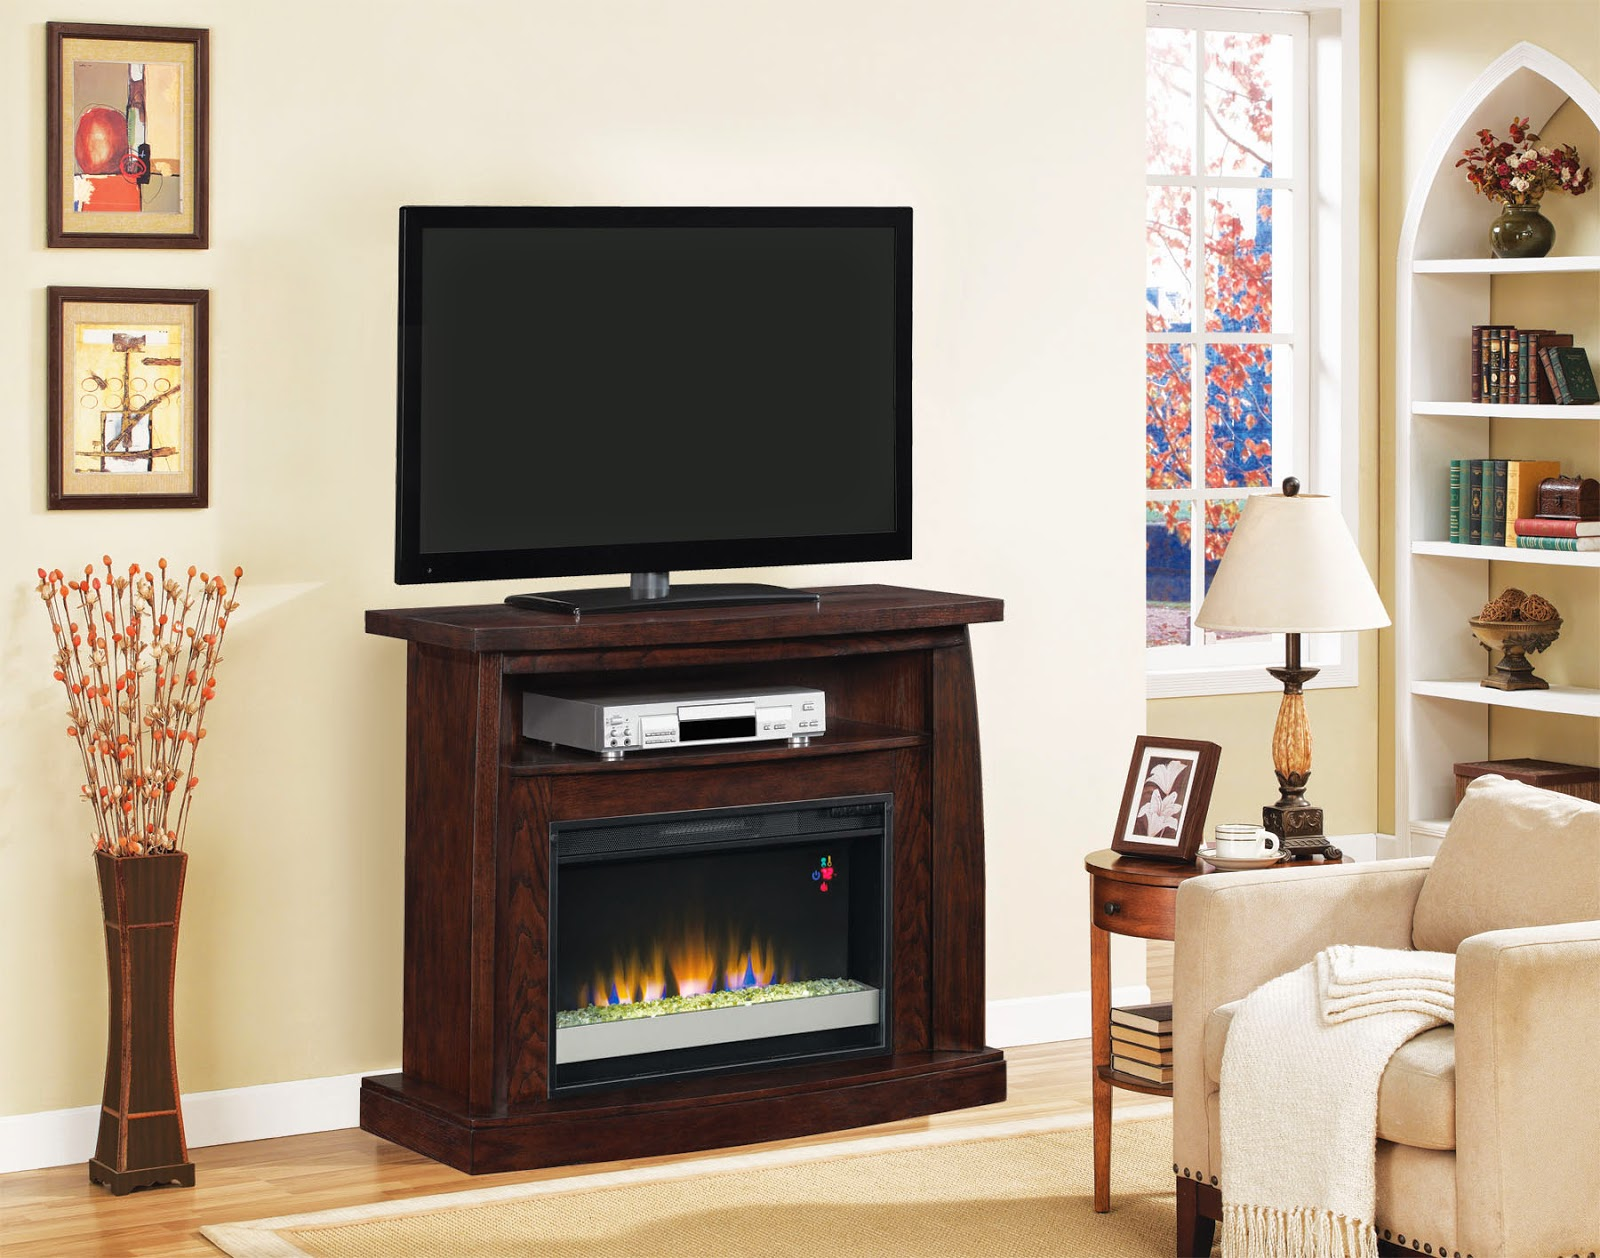 Twinstar International Go Green With Electric Fireplaces